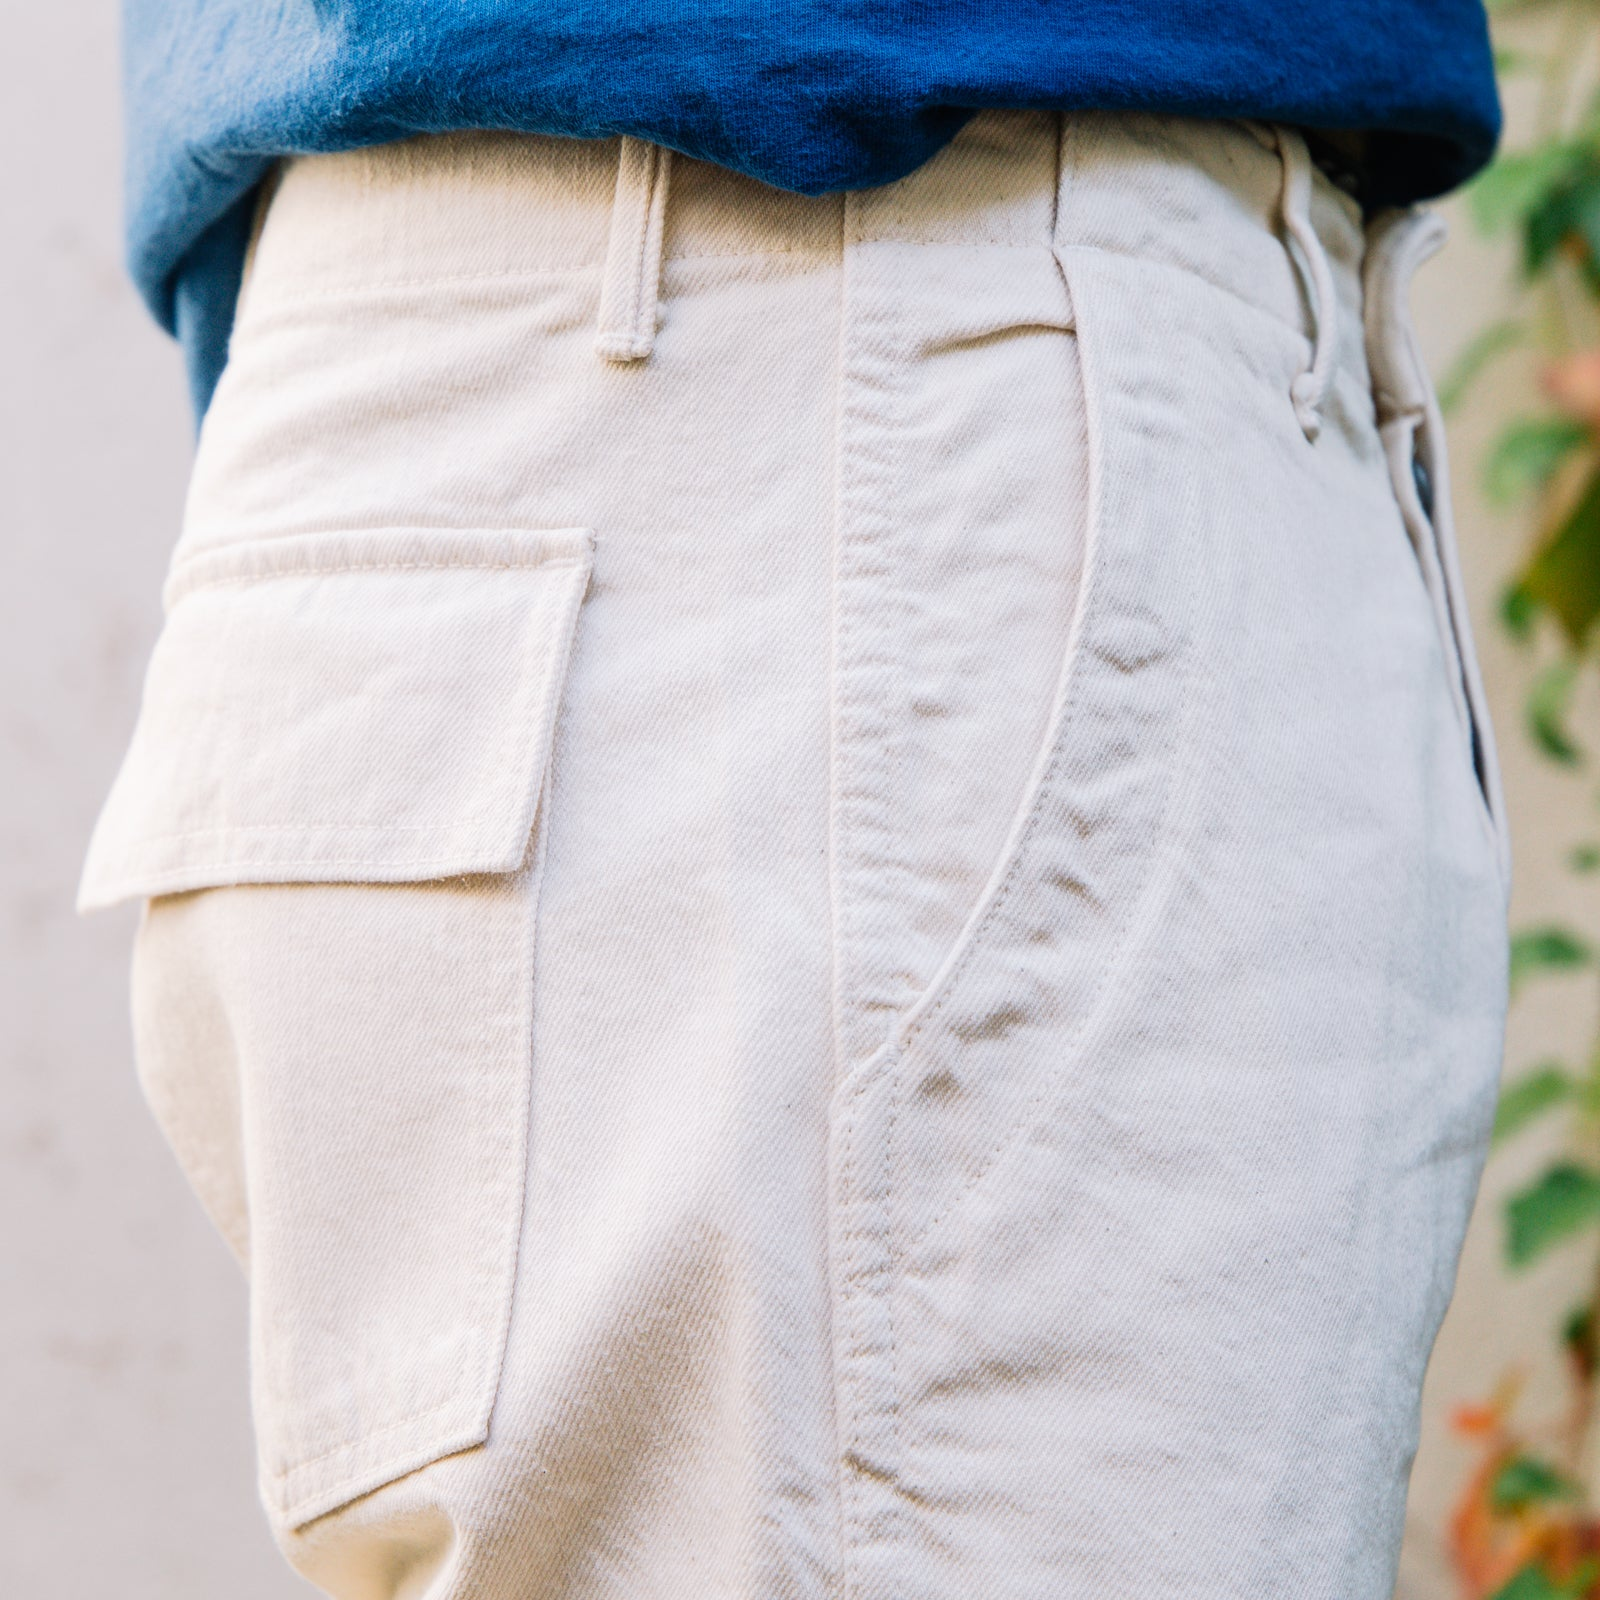 Load image into Gallery viewer, Rogue Territory - Field Pant in Ecru Denim